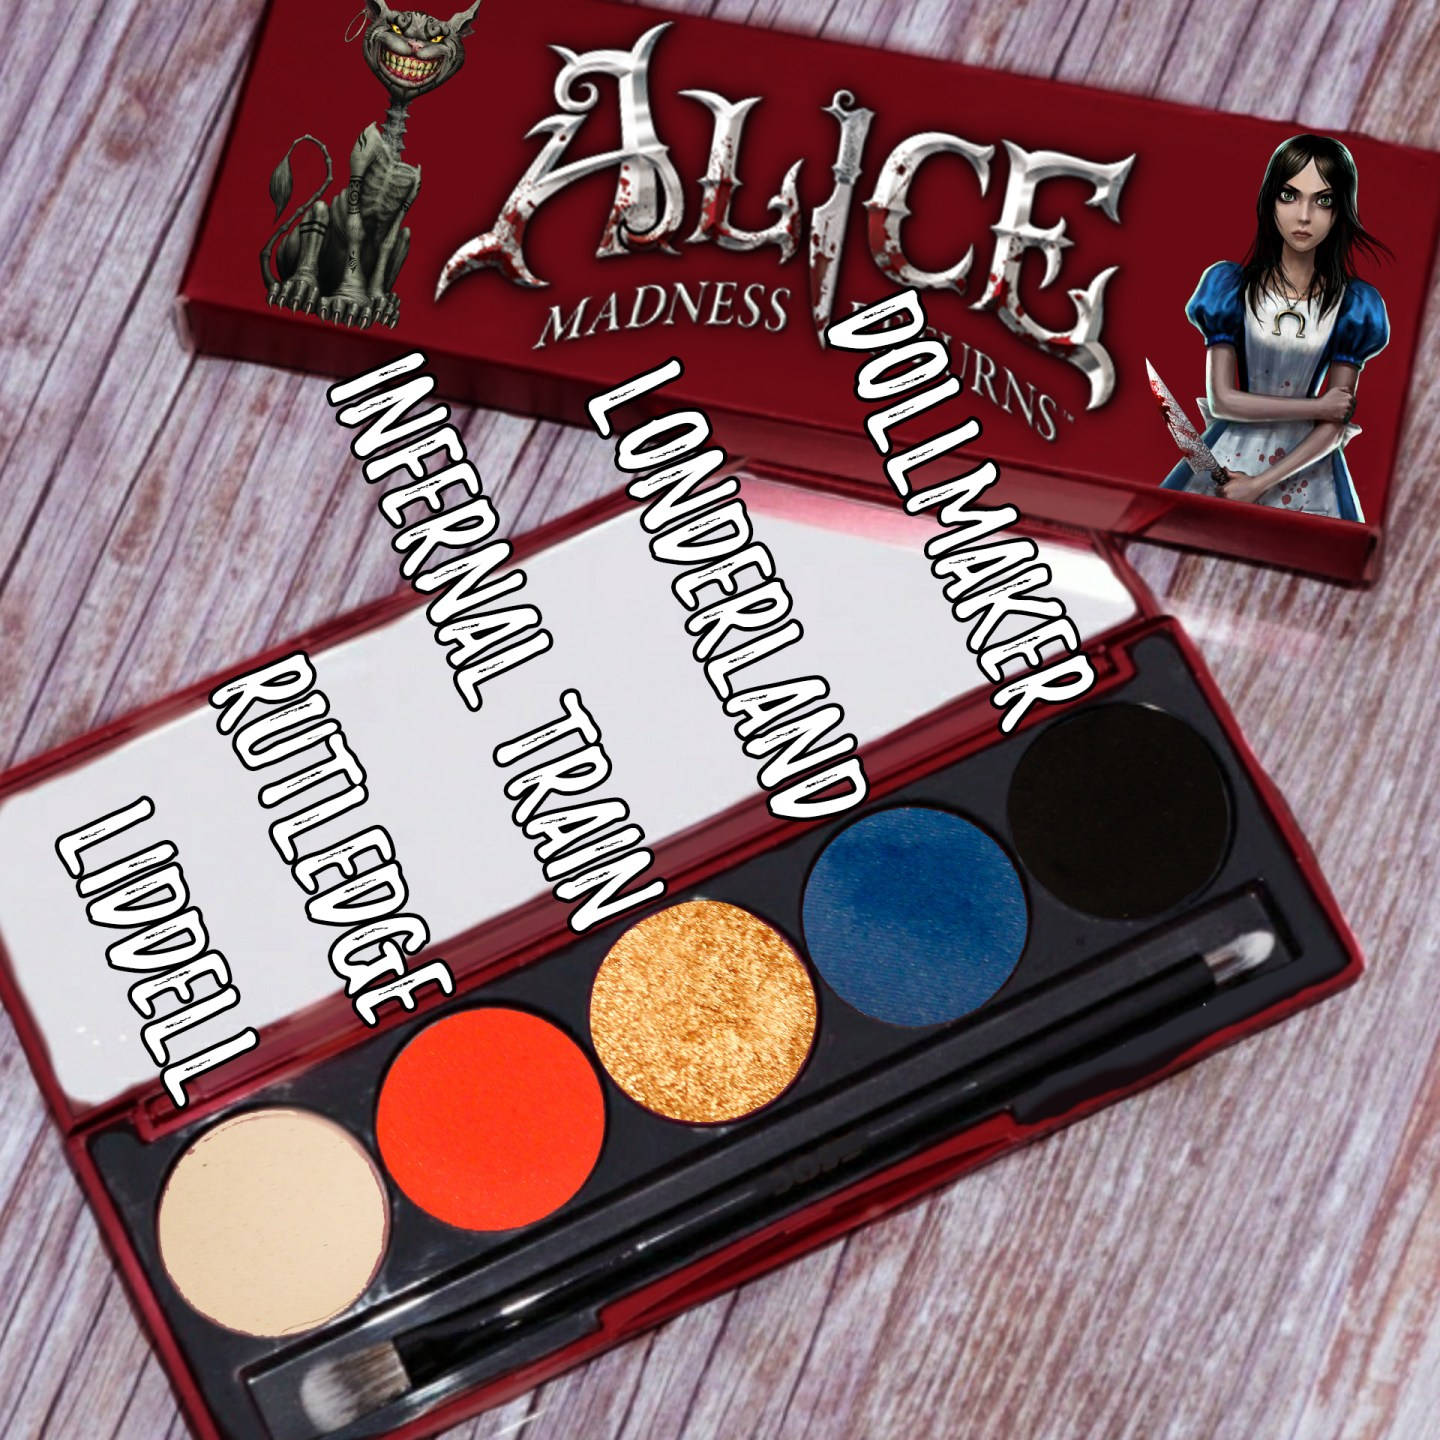 Making My Own Dream Palette Inspired by Alice: Madness Returns 4